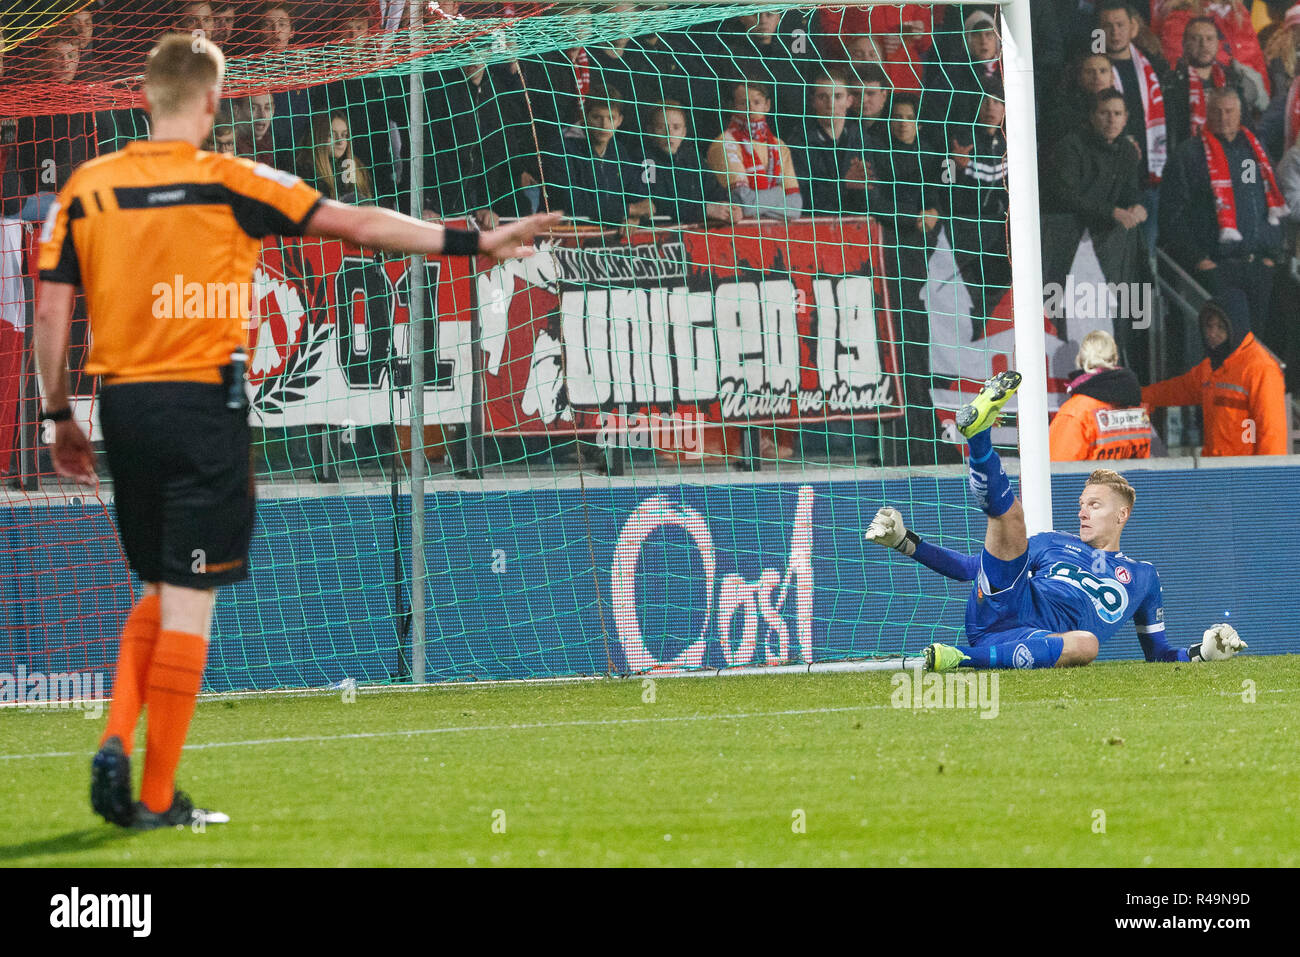 24 11 2018 Belgium Oostende Kortrijk S Goalkeeper Thomas Kaminski Fails To Stop A Penalty During A Soccer